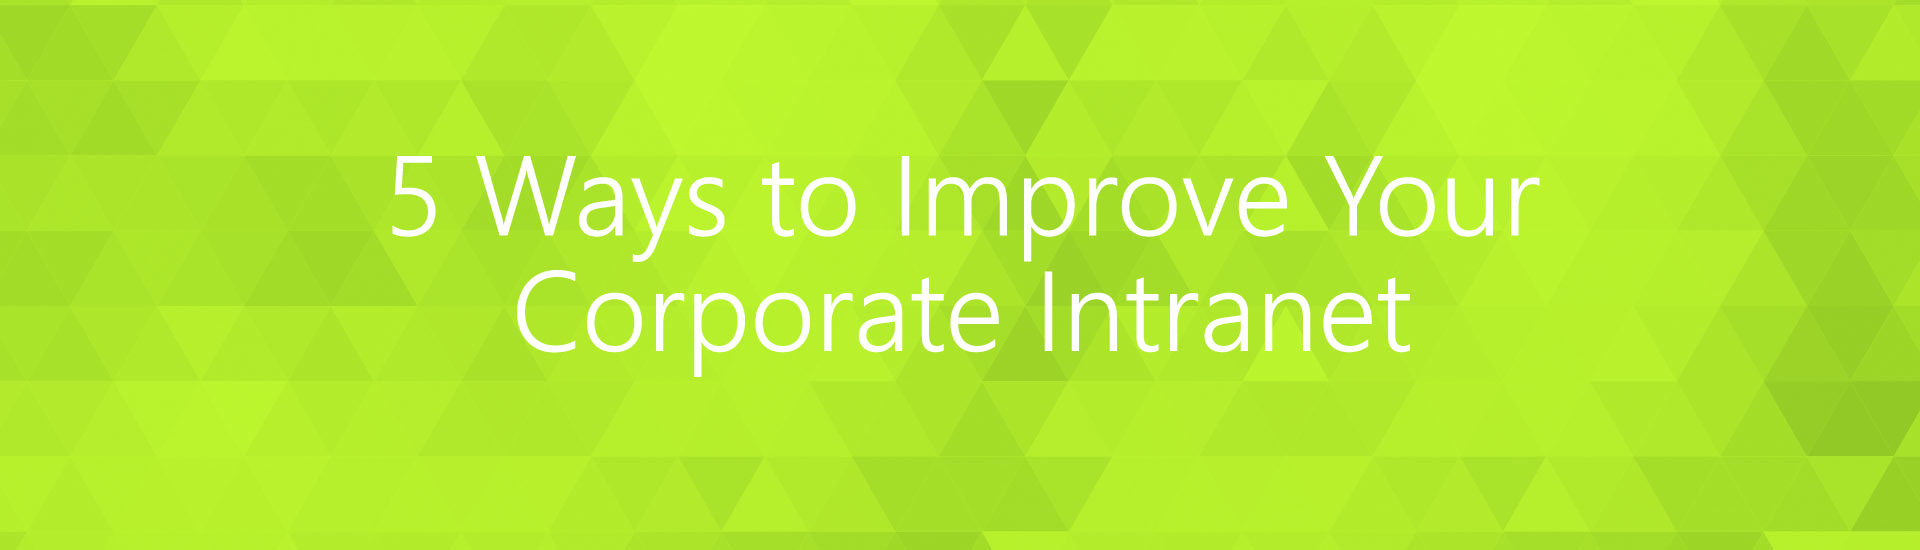 5 Ways to Improve Your Corporate Intranet